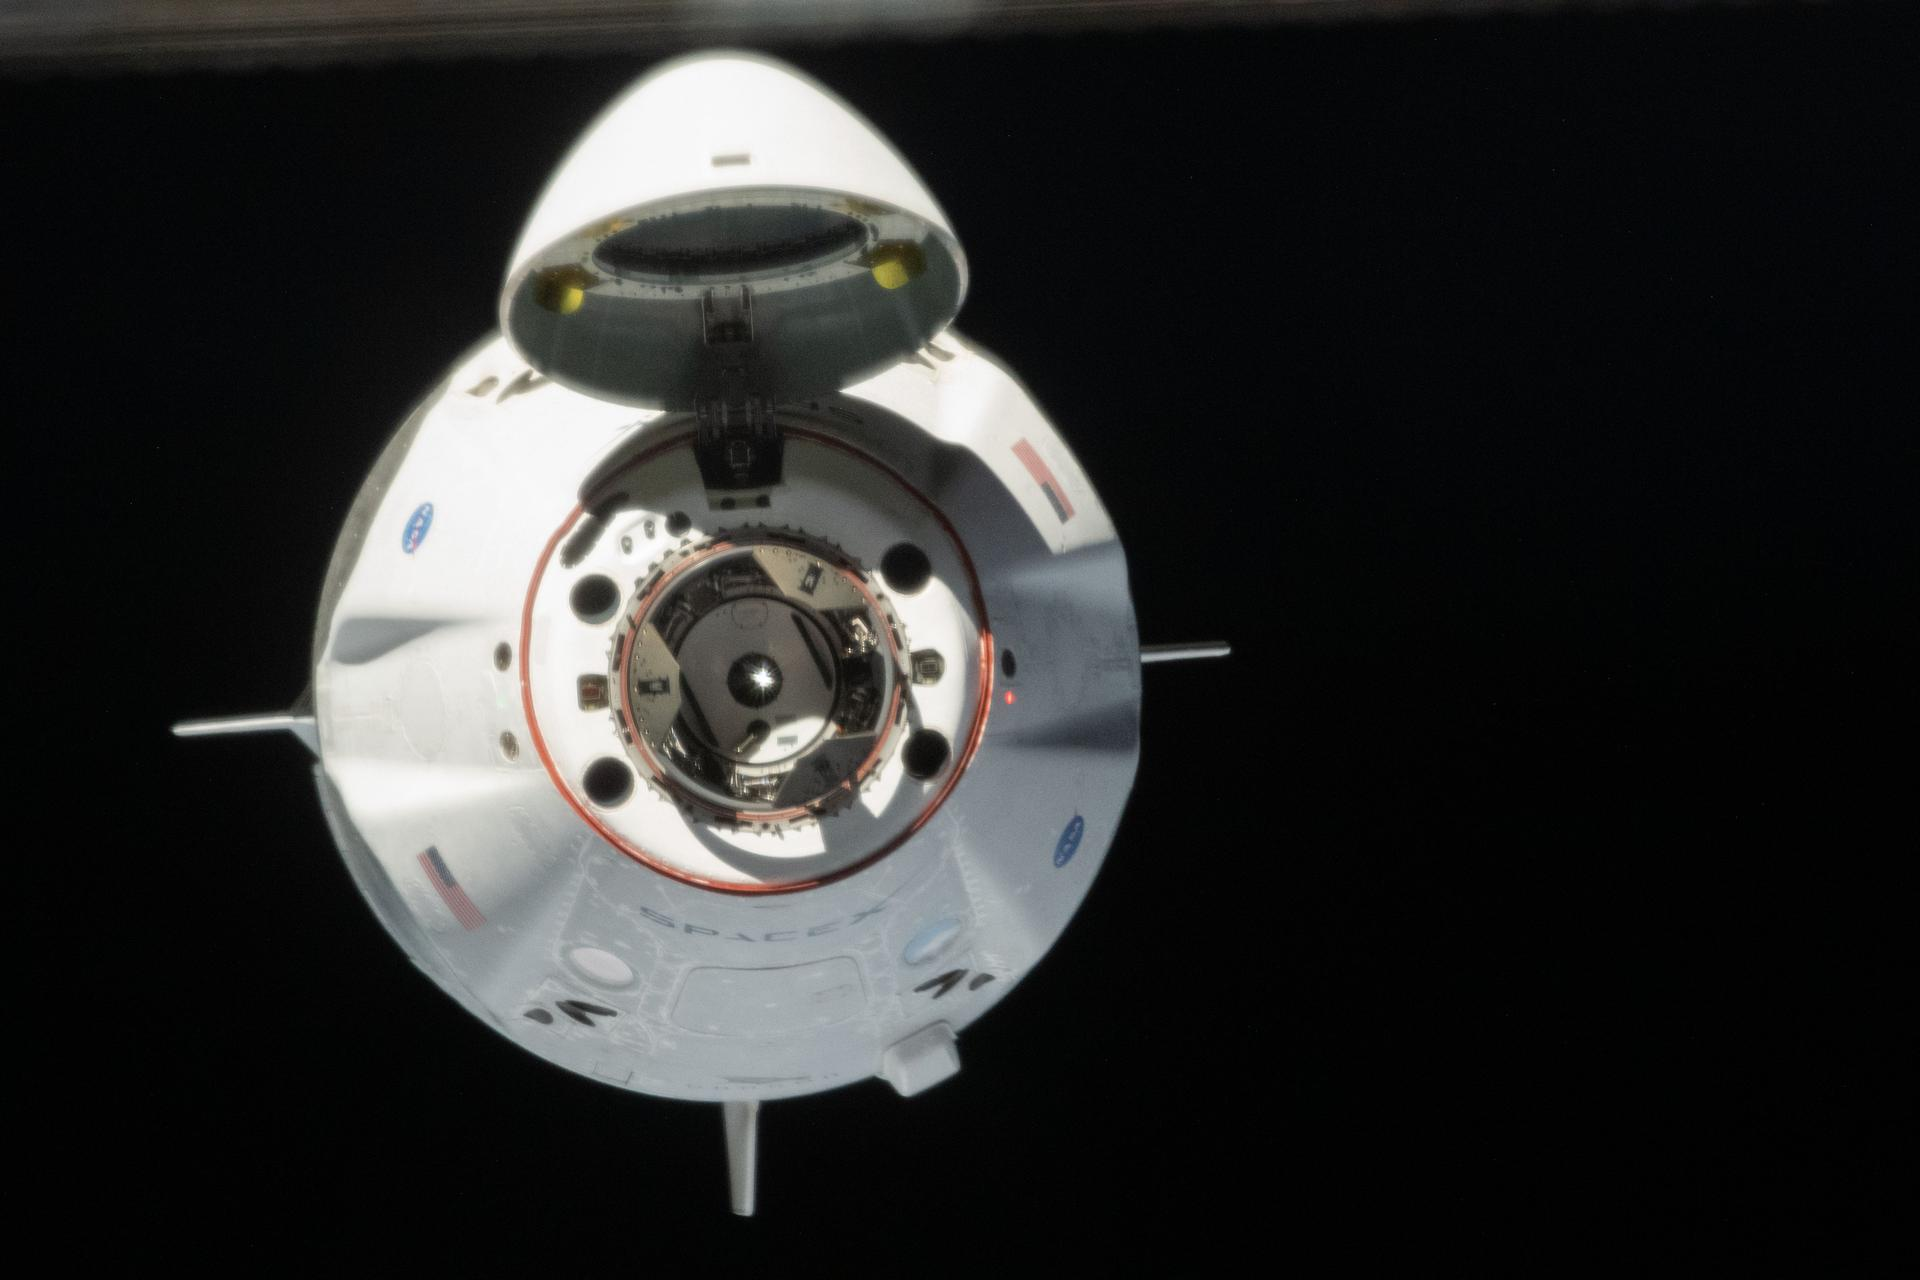 NASA's Head of Human Spaceflight says SpaceX's Crew Dragon is 'doing great' at the Space Station